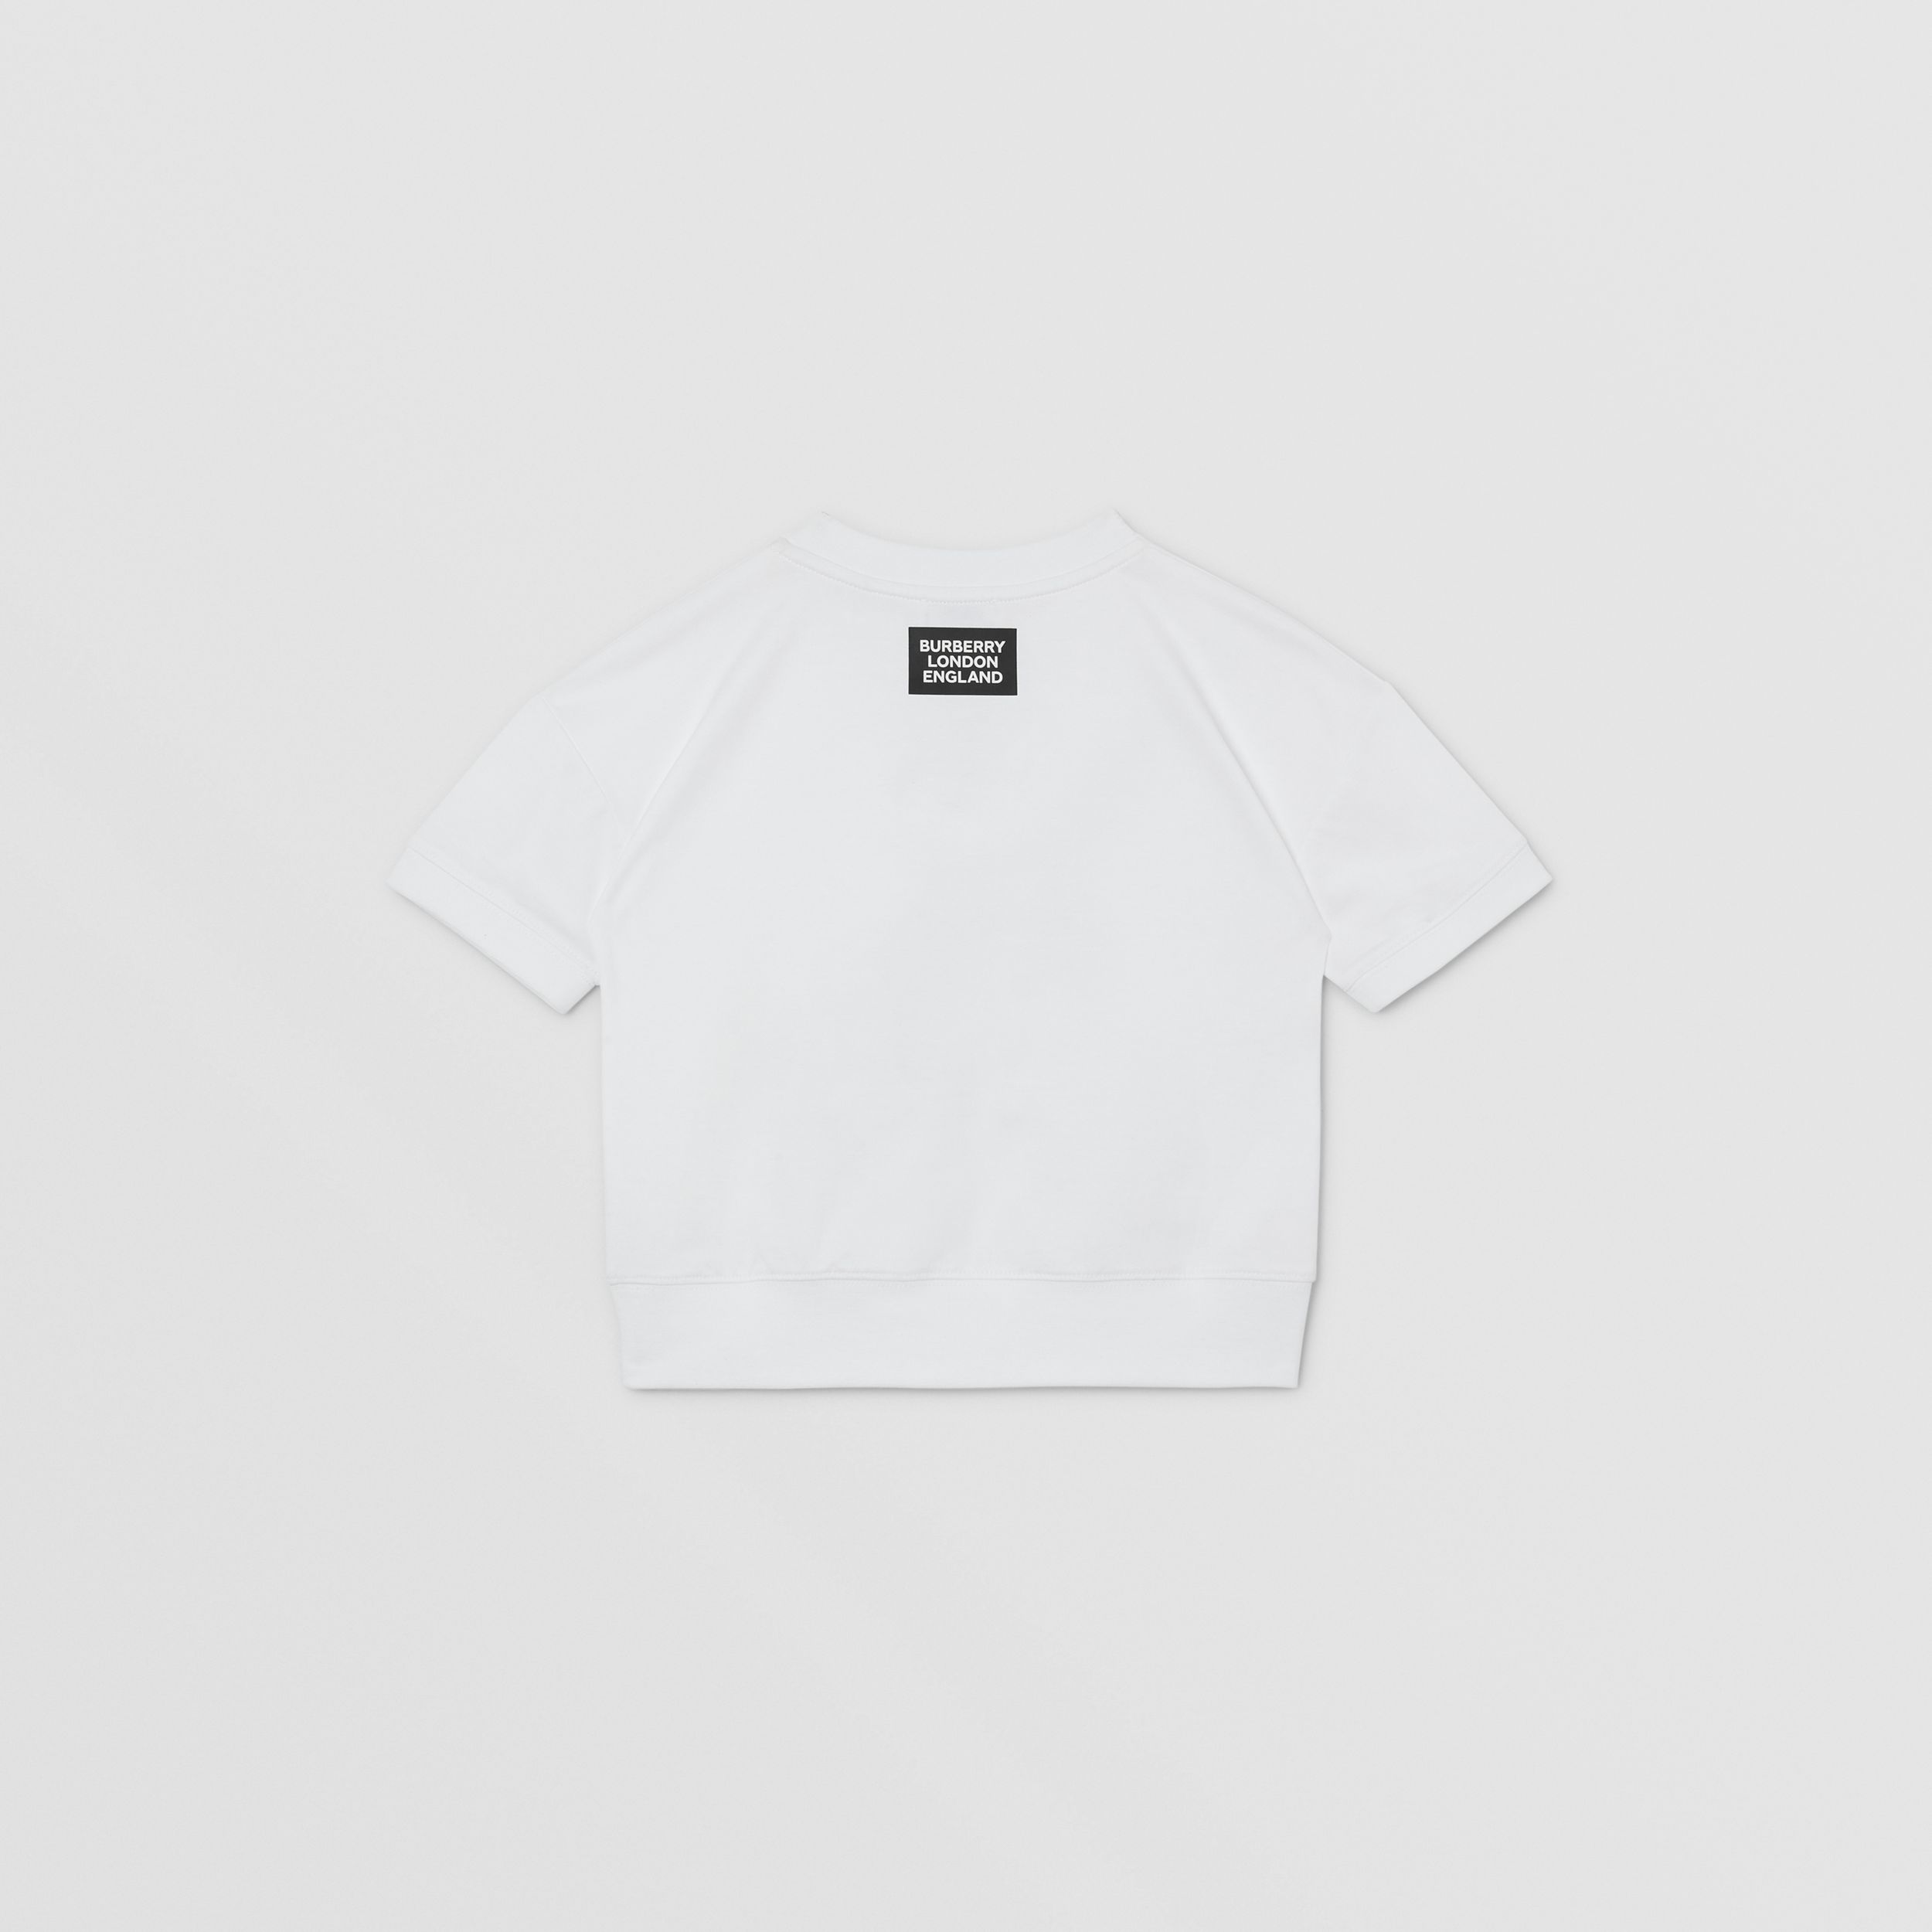 Montage Print Cotton T-shirt in White | Burberry Hong Kong S.A.R. - 4